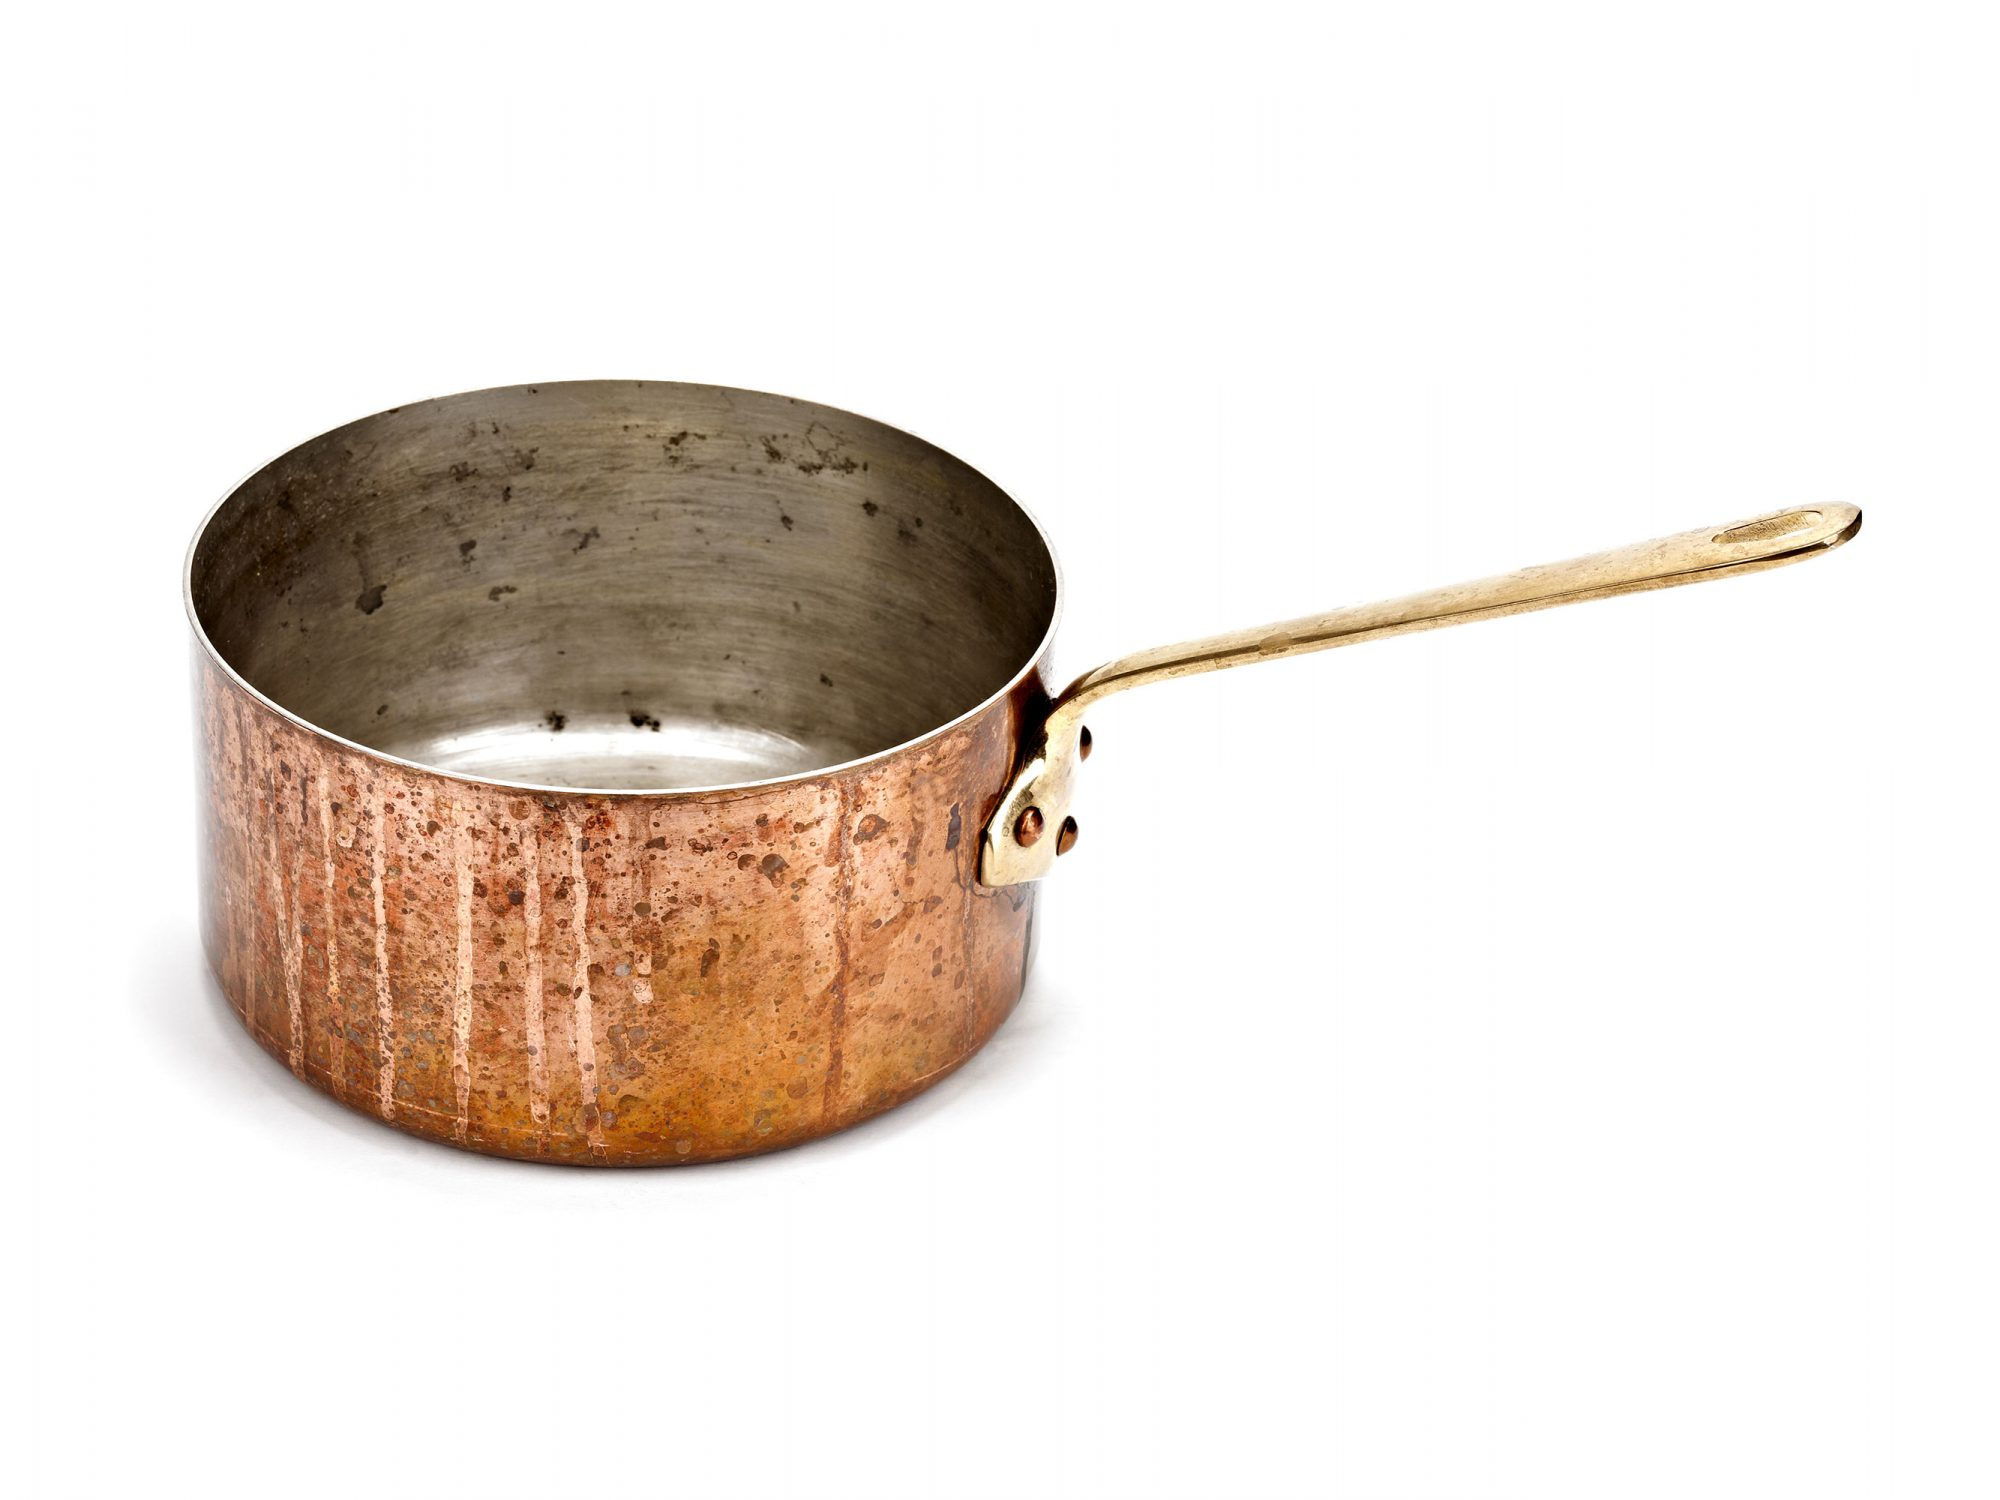 copper saucepan dirty on white background